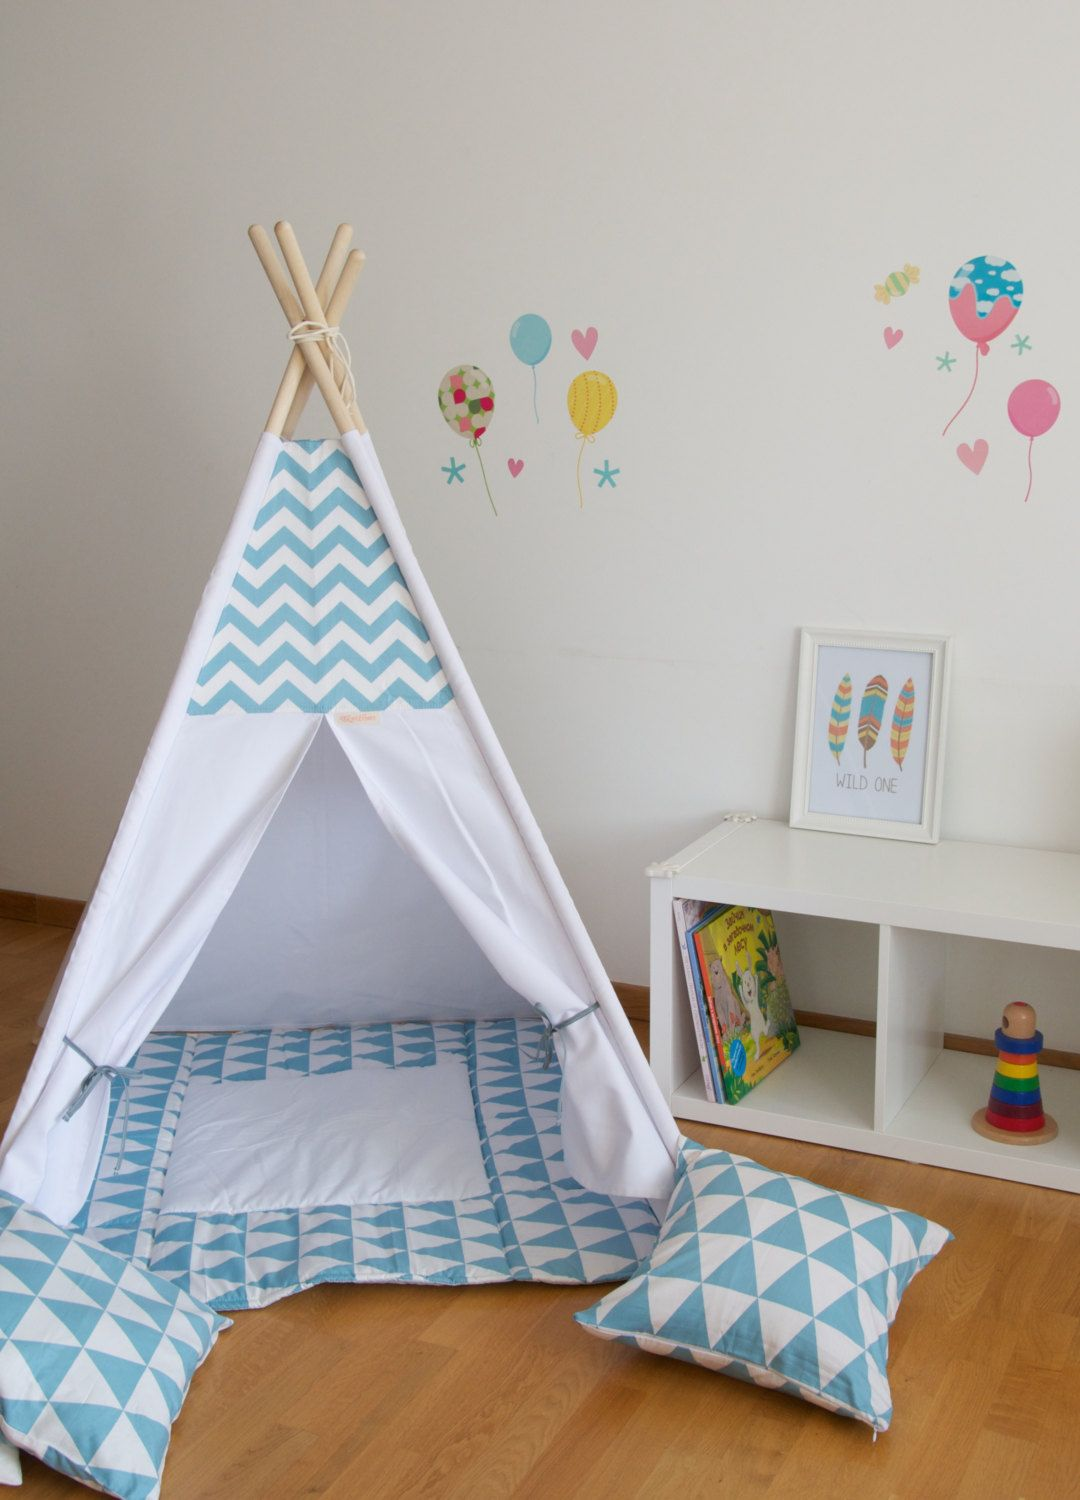 ... Lovely Tent Design For Kids Beds With Kids Tent For Beds With Pink  Color And Tents ...